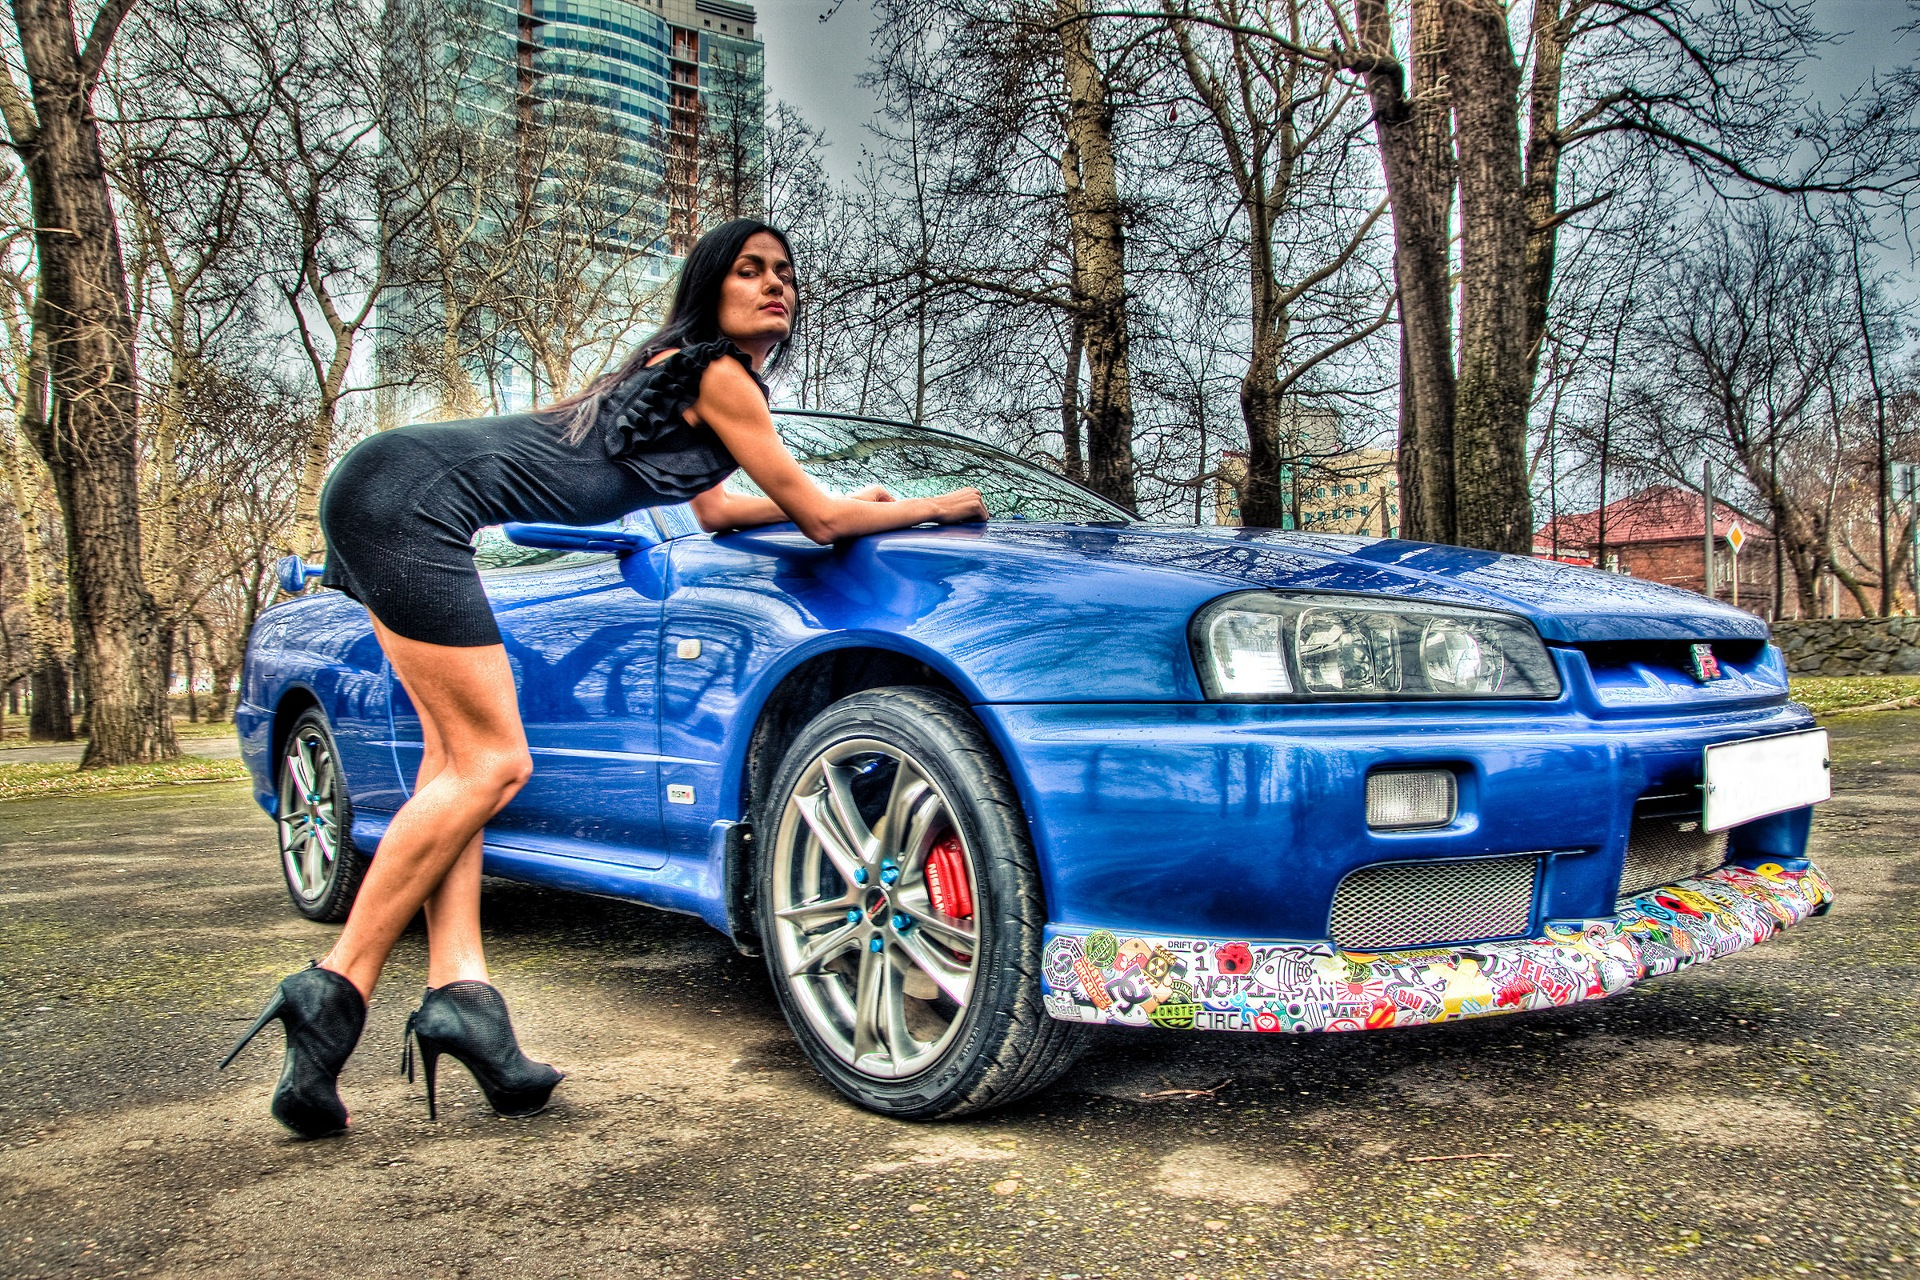 pics-of-girls-and-cars-young-teen-girls-peeing